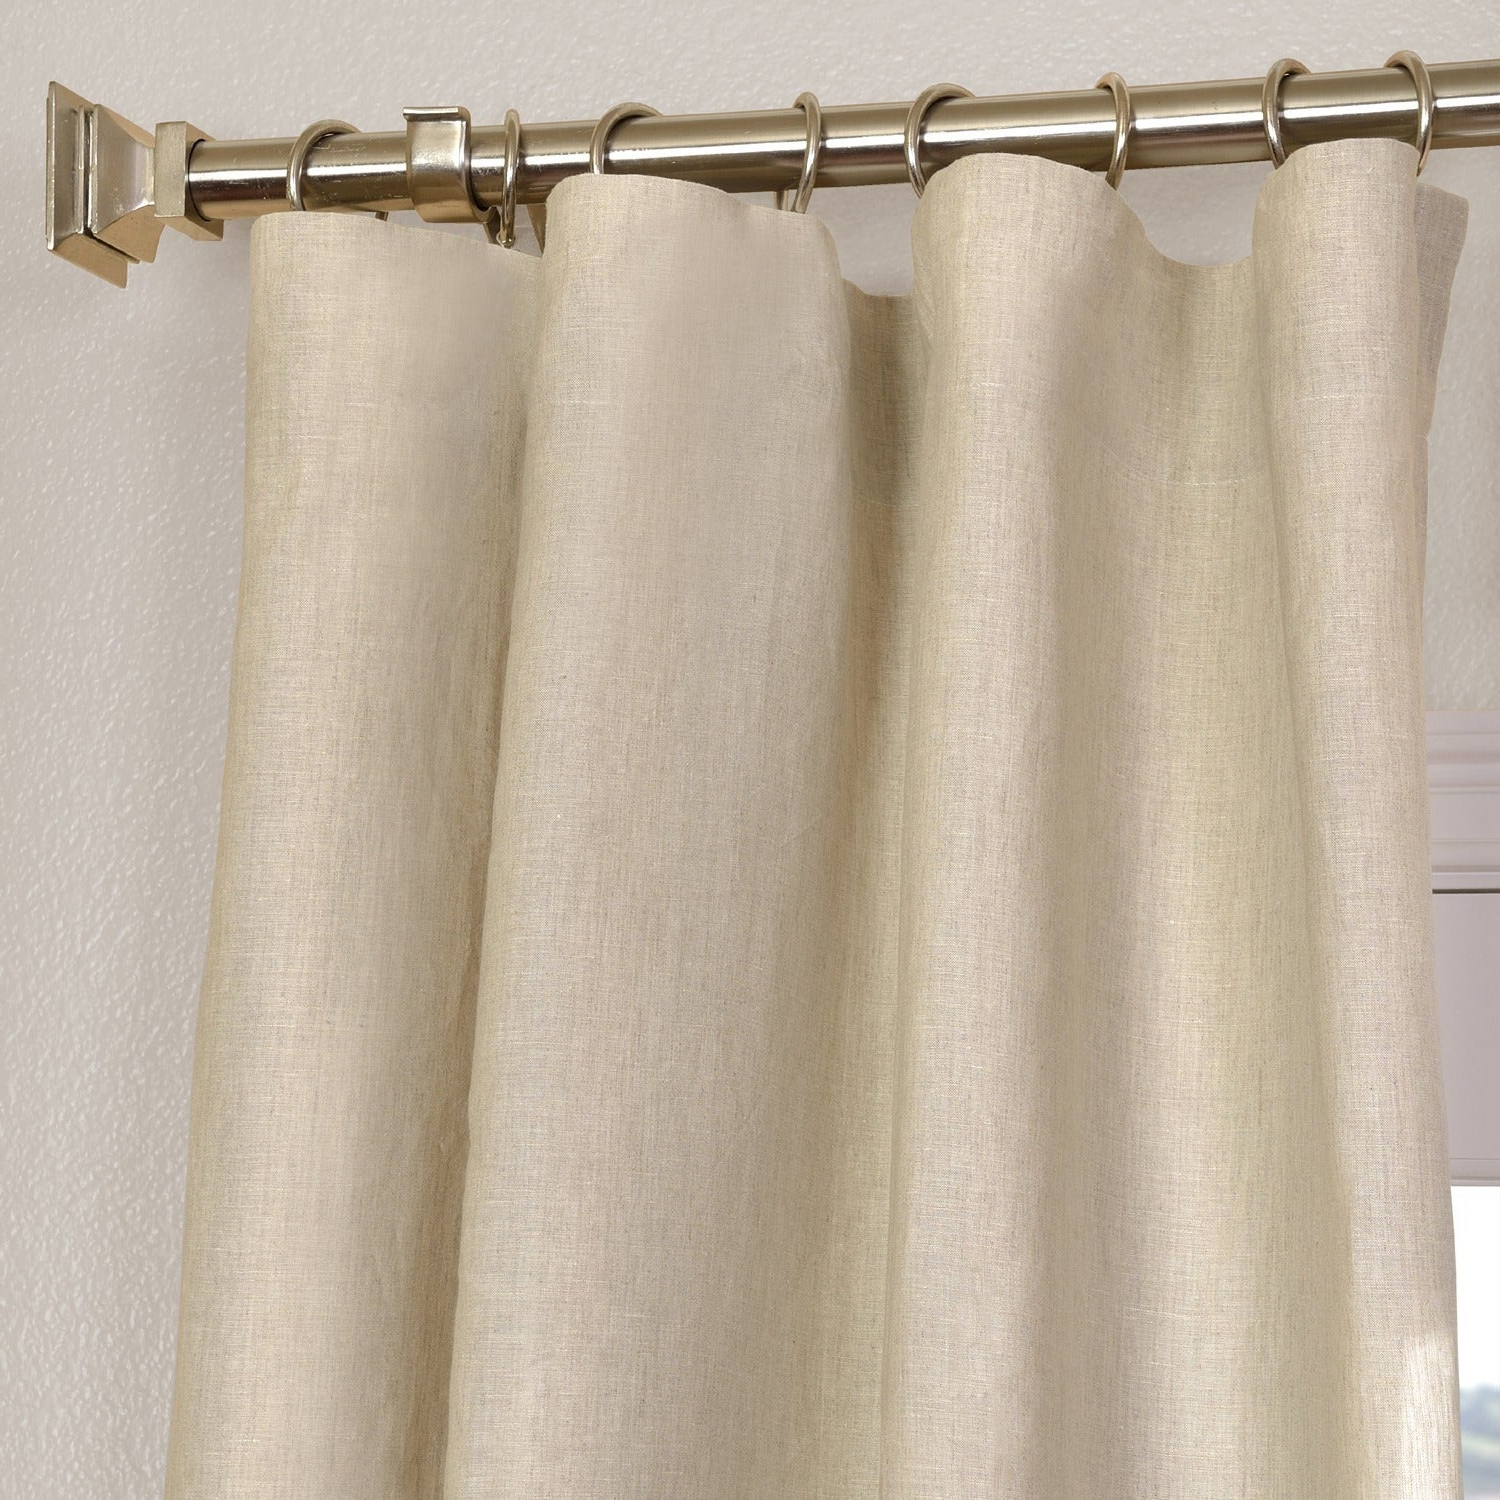 Recent Signature French Linen Curtain Panels Intended For Exclusive Fabrics Signature French Linen Curtain Panel (Gallery 7 of 20)